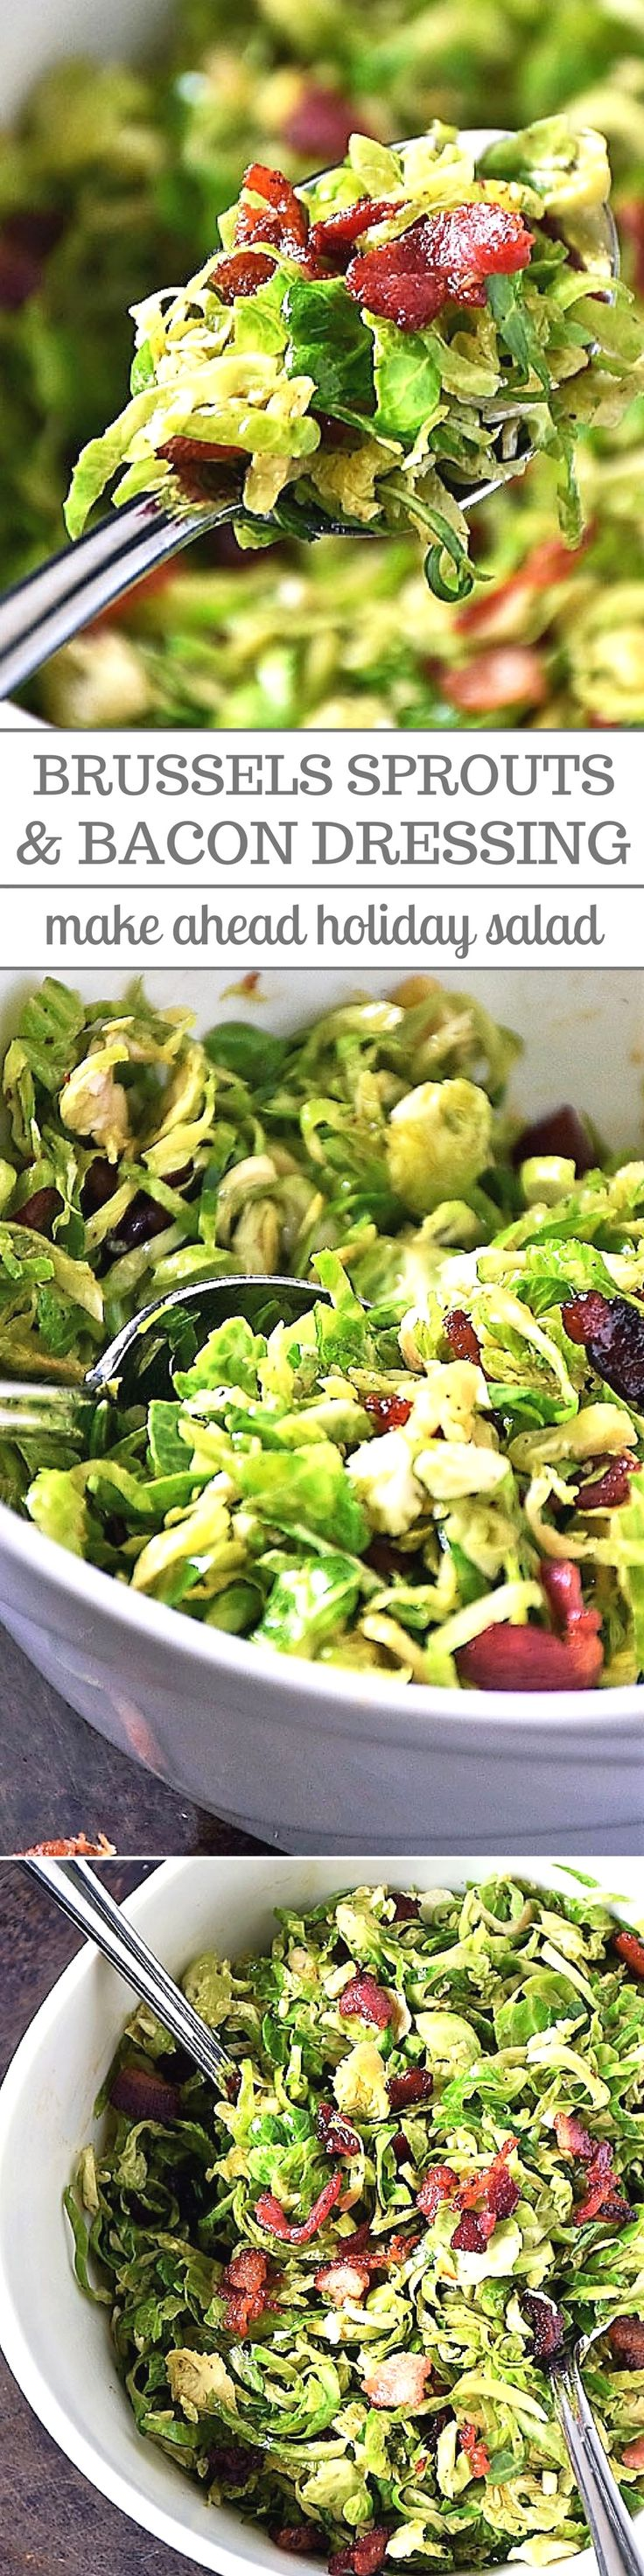 Shredded Brussels Sprouts with Bacon Dressing will make even the pickiest eaters fall in love with Brussels sprouts! Shredded Brussels sprouts are tossed with a deliciously savory bacon dressing for a simple salad everyone will love! #HolidayRecipes #SaladRecipes #BrusselsSprouts #BaconRecipes